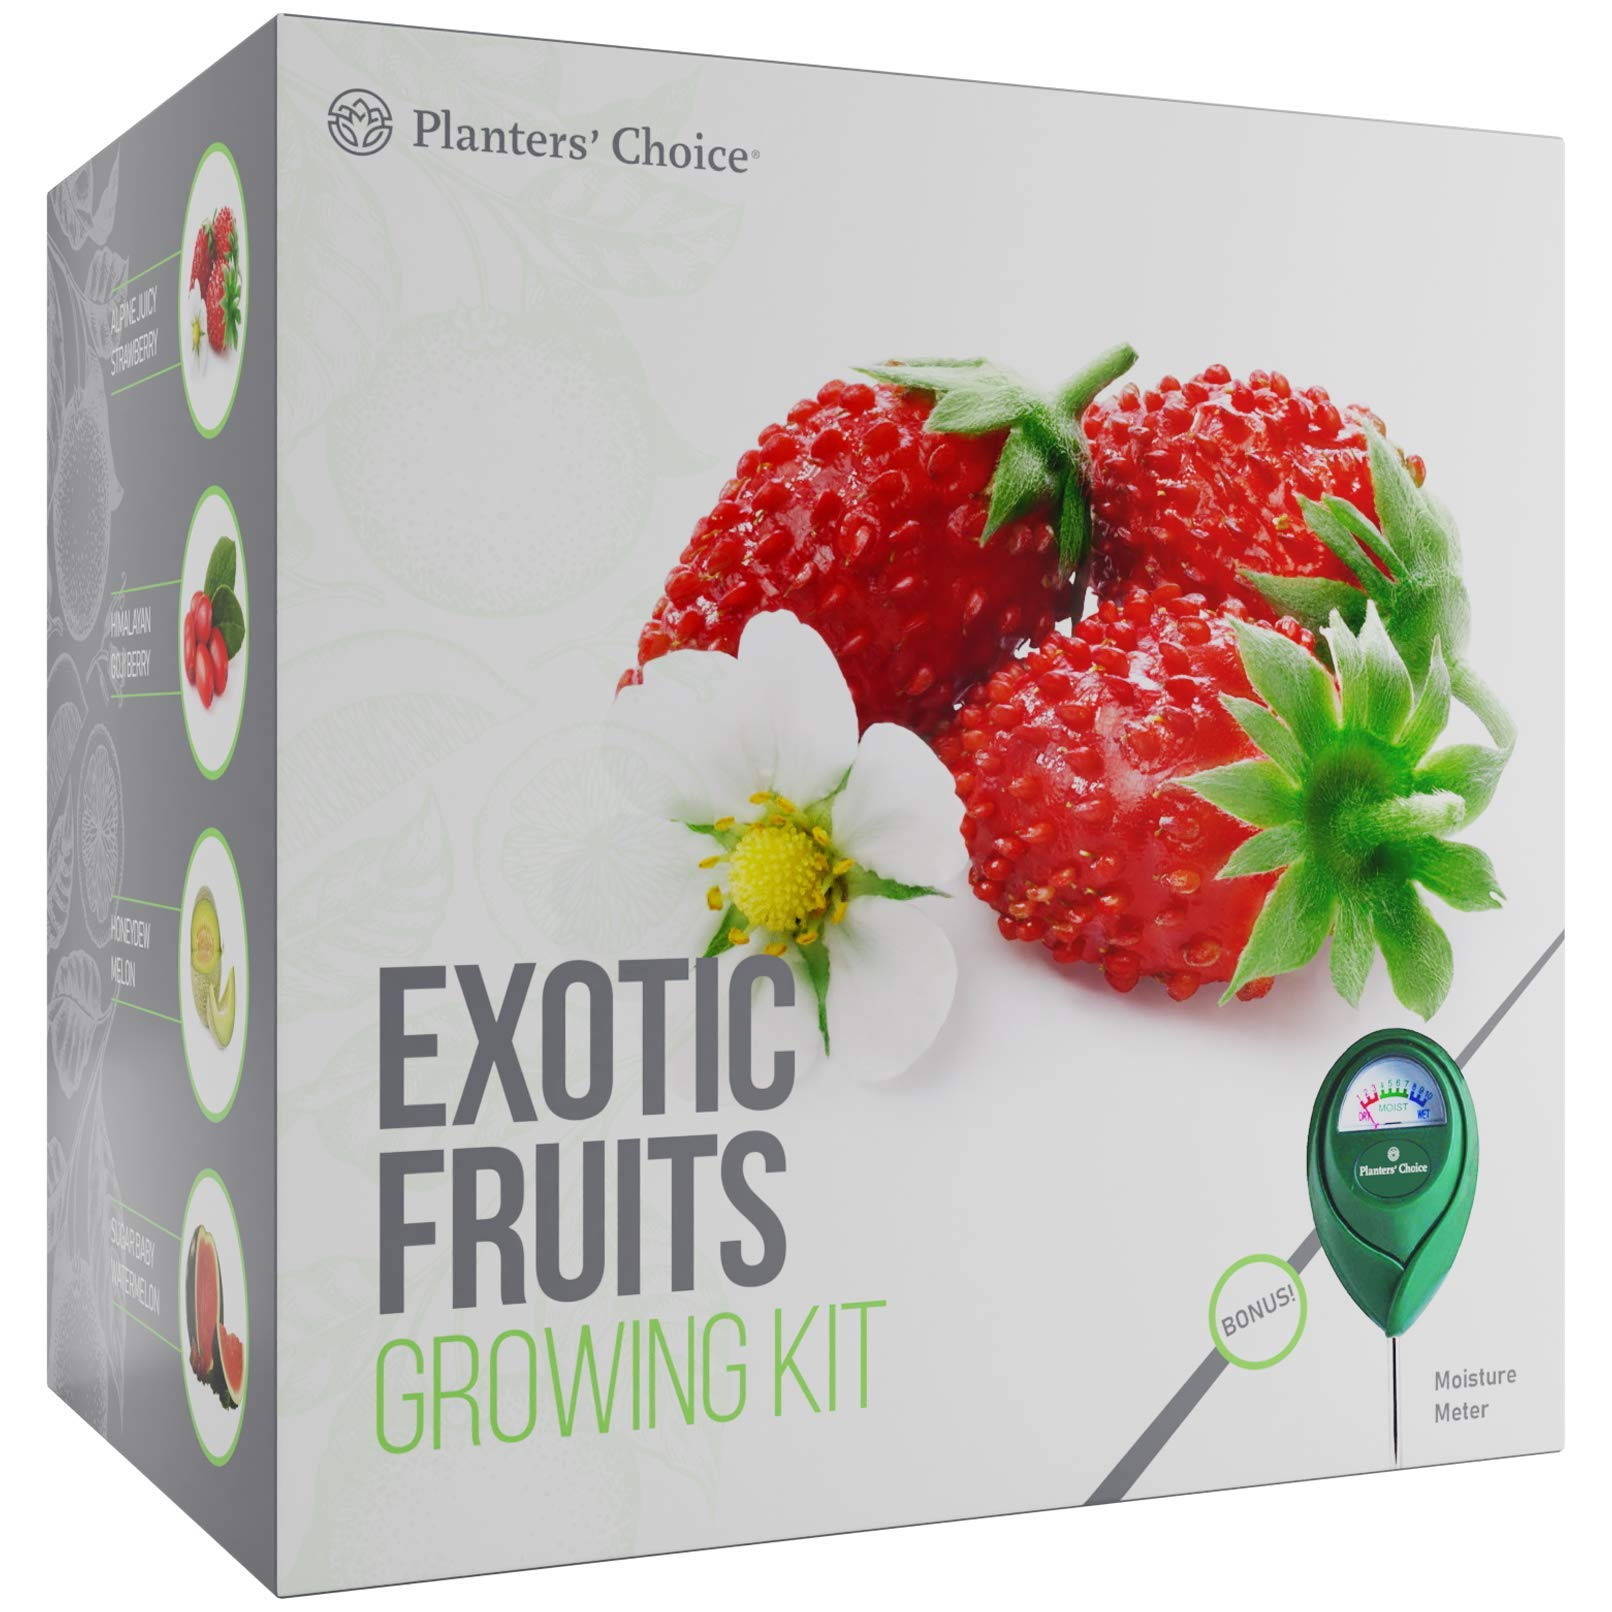 Exotic Fruits Growing Kit - Everything Included to Easily Grow 4 Unique Fruits - Strawberries, Goji Berries, Honeydew, Watermelon + Moisture Meter by Planters' Choice